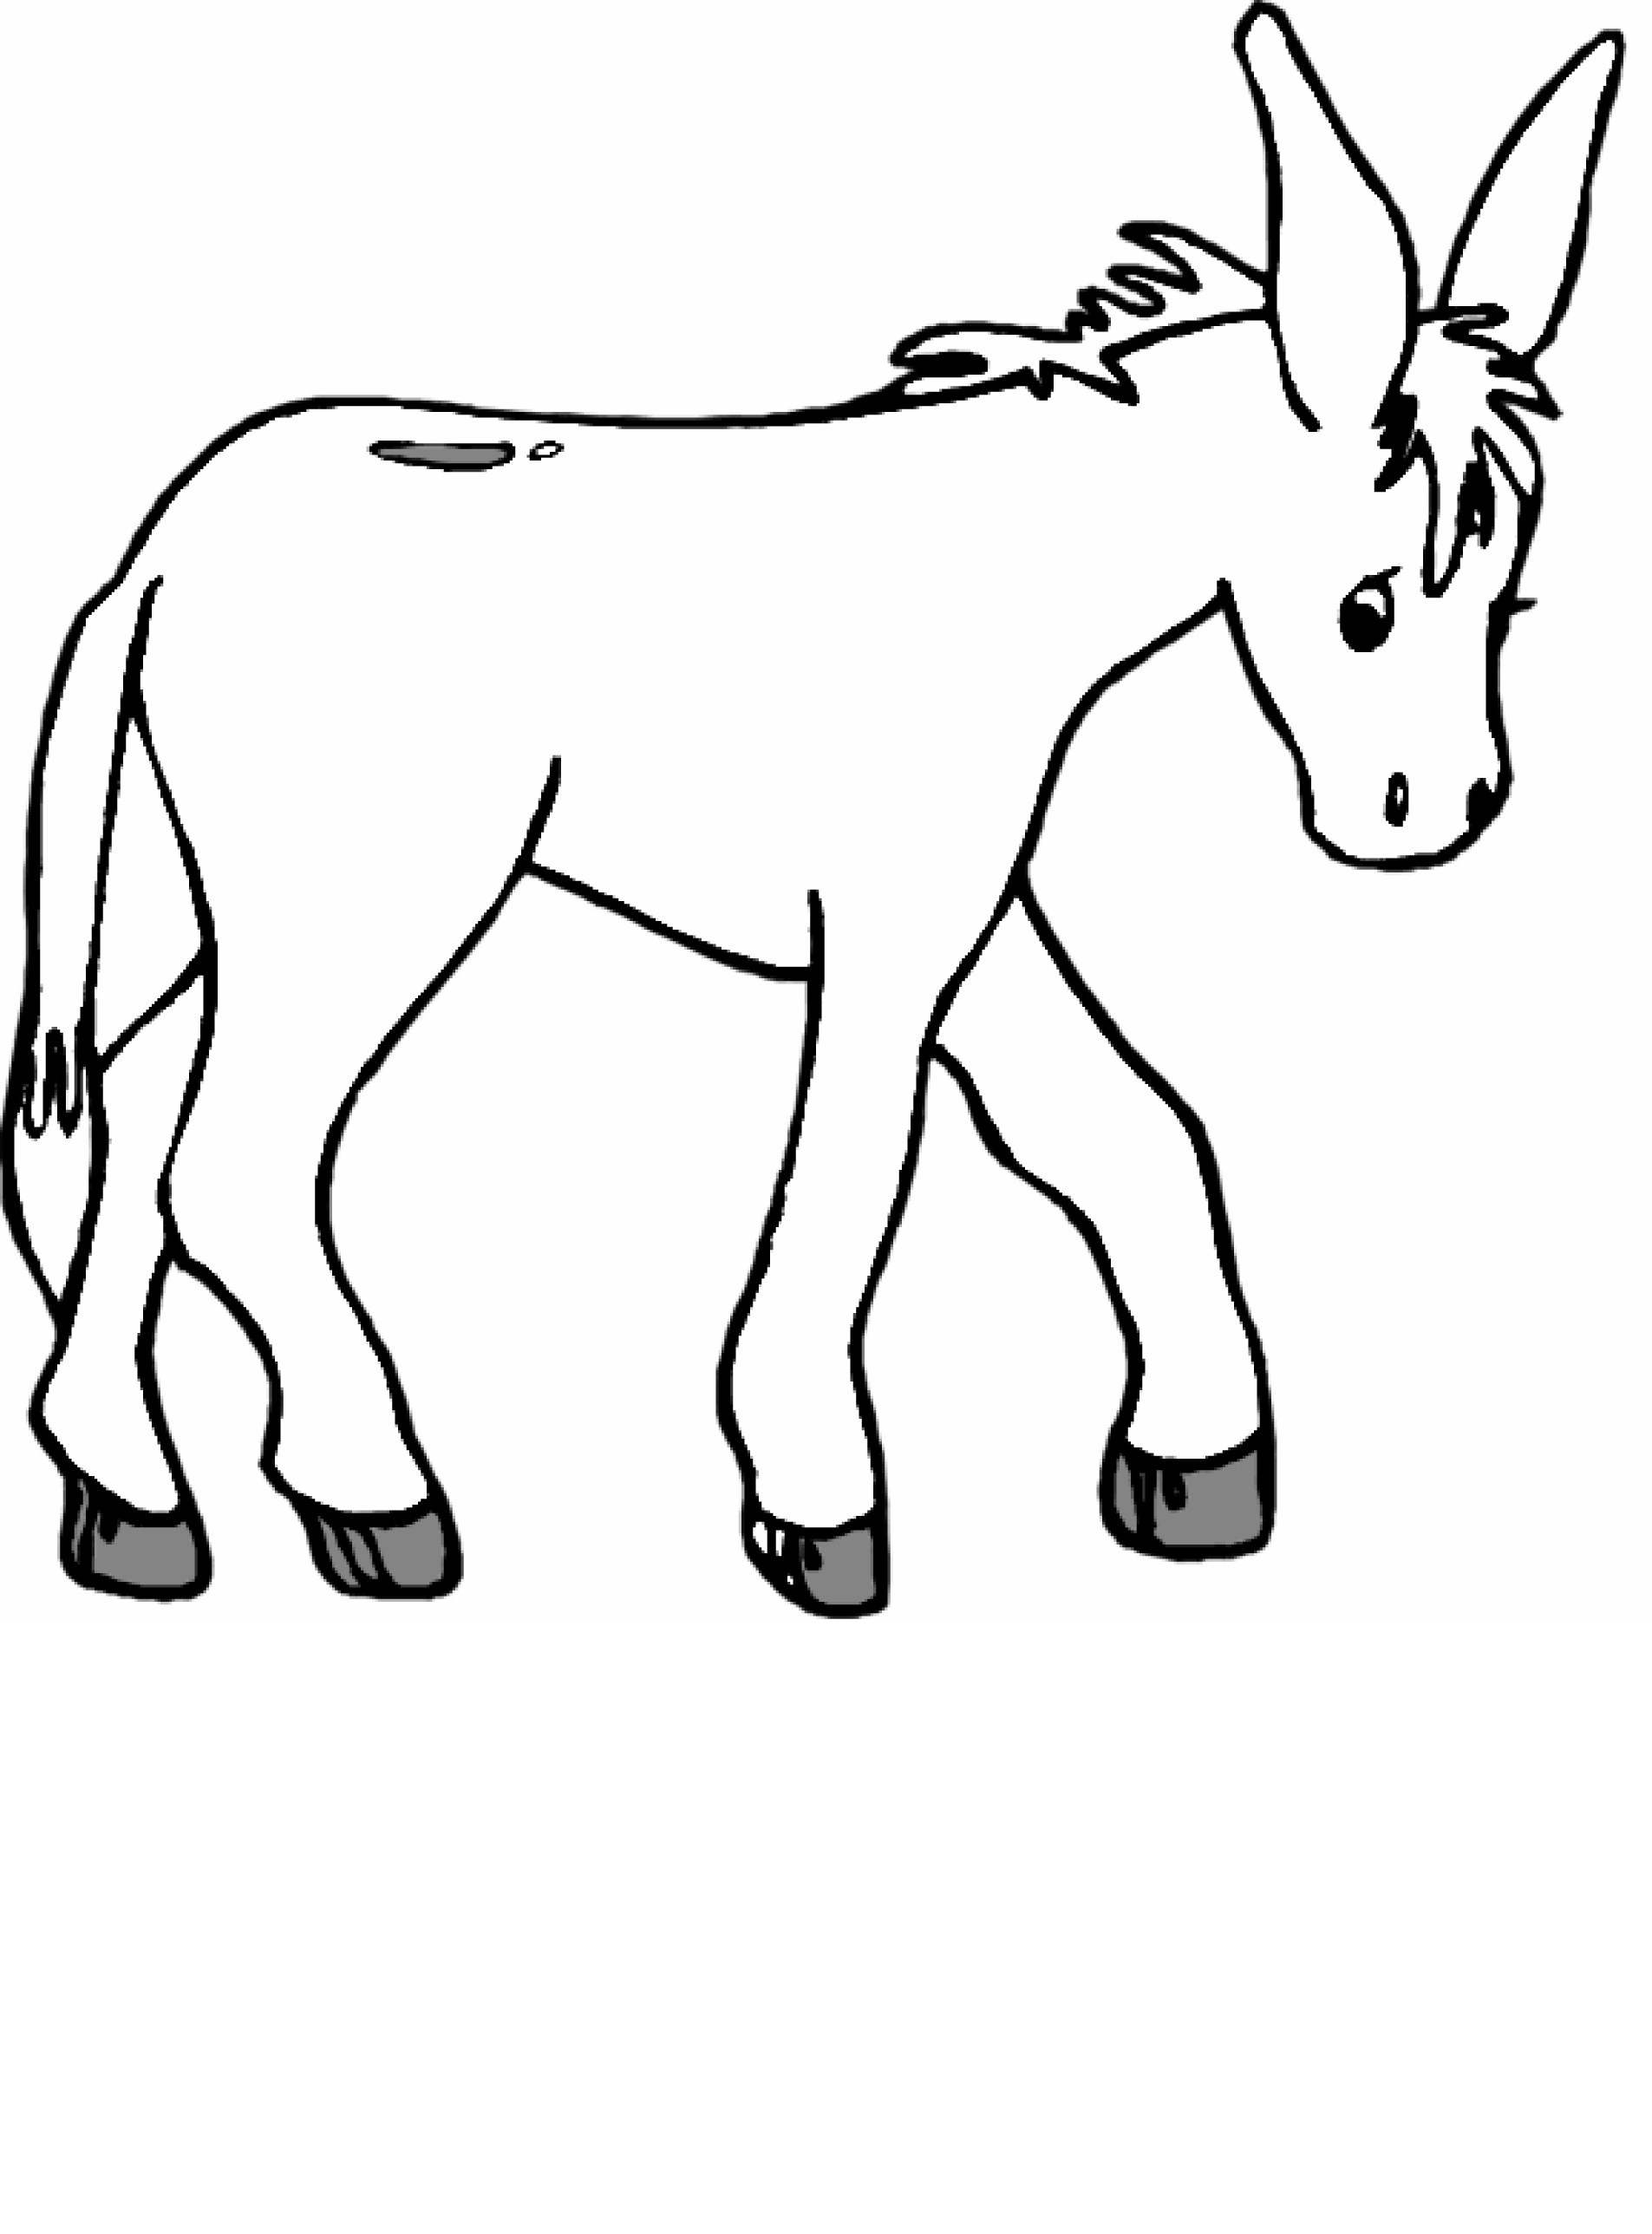 Donkey coloring #7, Download drawings